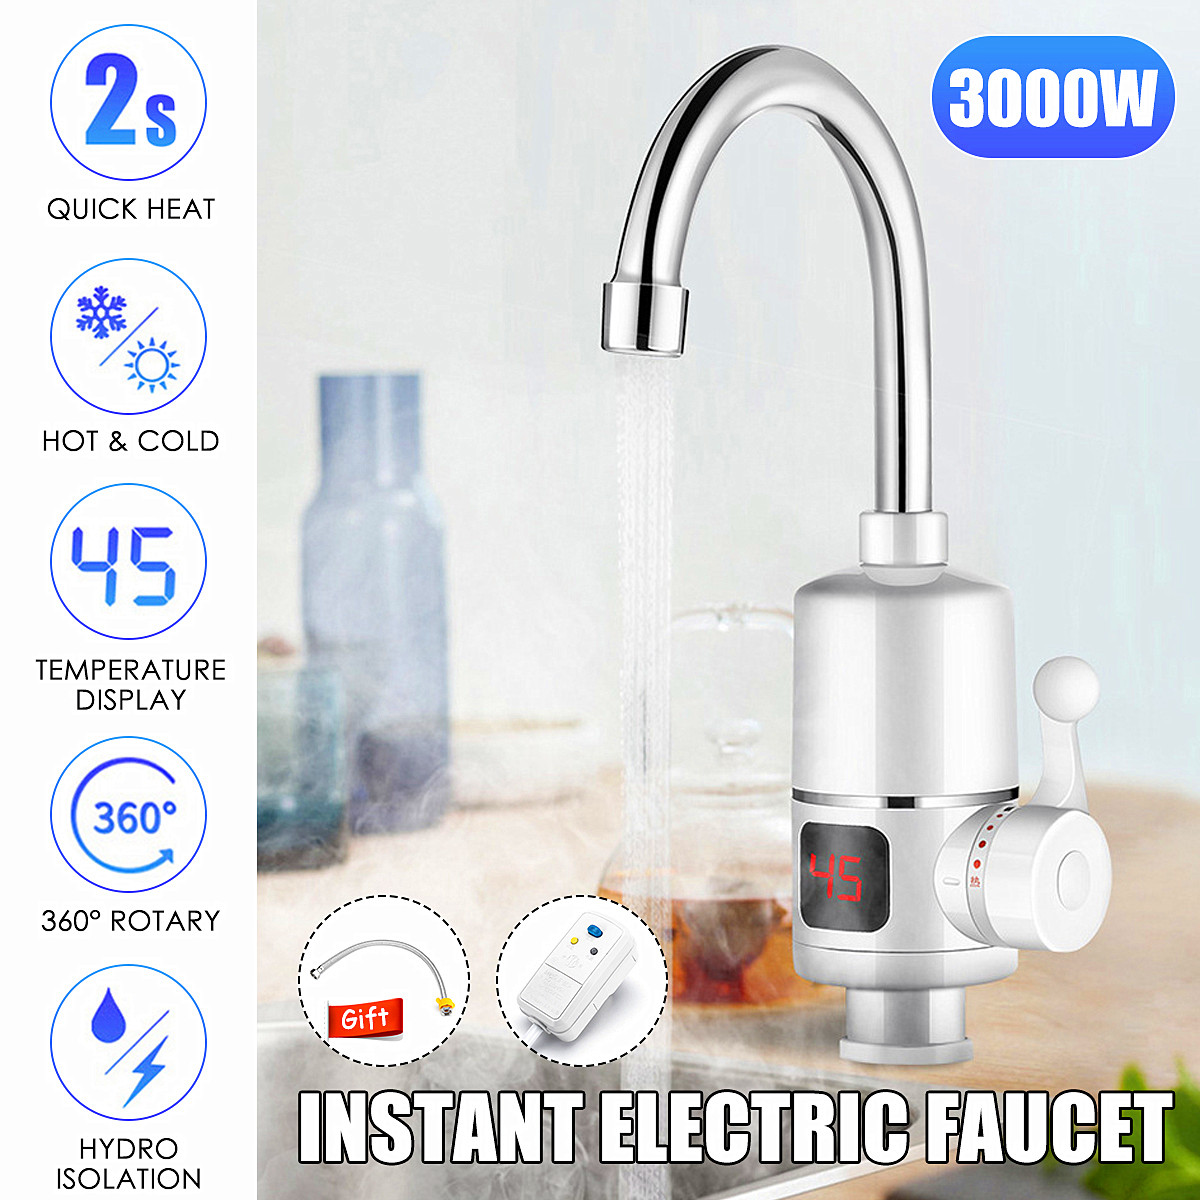 Kitchen Tankless Faucet Instant Electric Hot Water Tap Fast Water Heater Sink 3KW Temperature Display With Leakage ProtectionsKitchen Tankless Faucet Instant Electric Hot Water Tap Fast Water Heater Sink 3KW Temperature Display With Leakage Protections